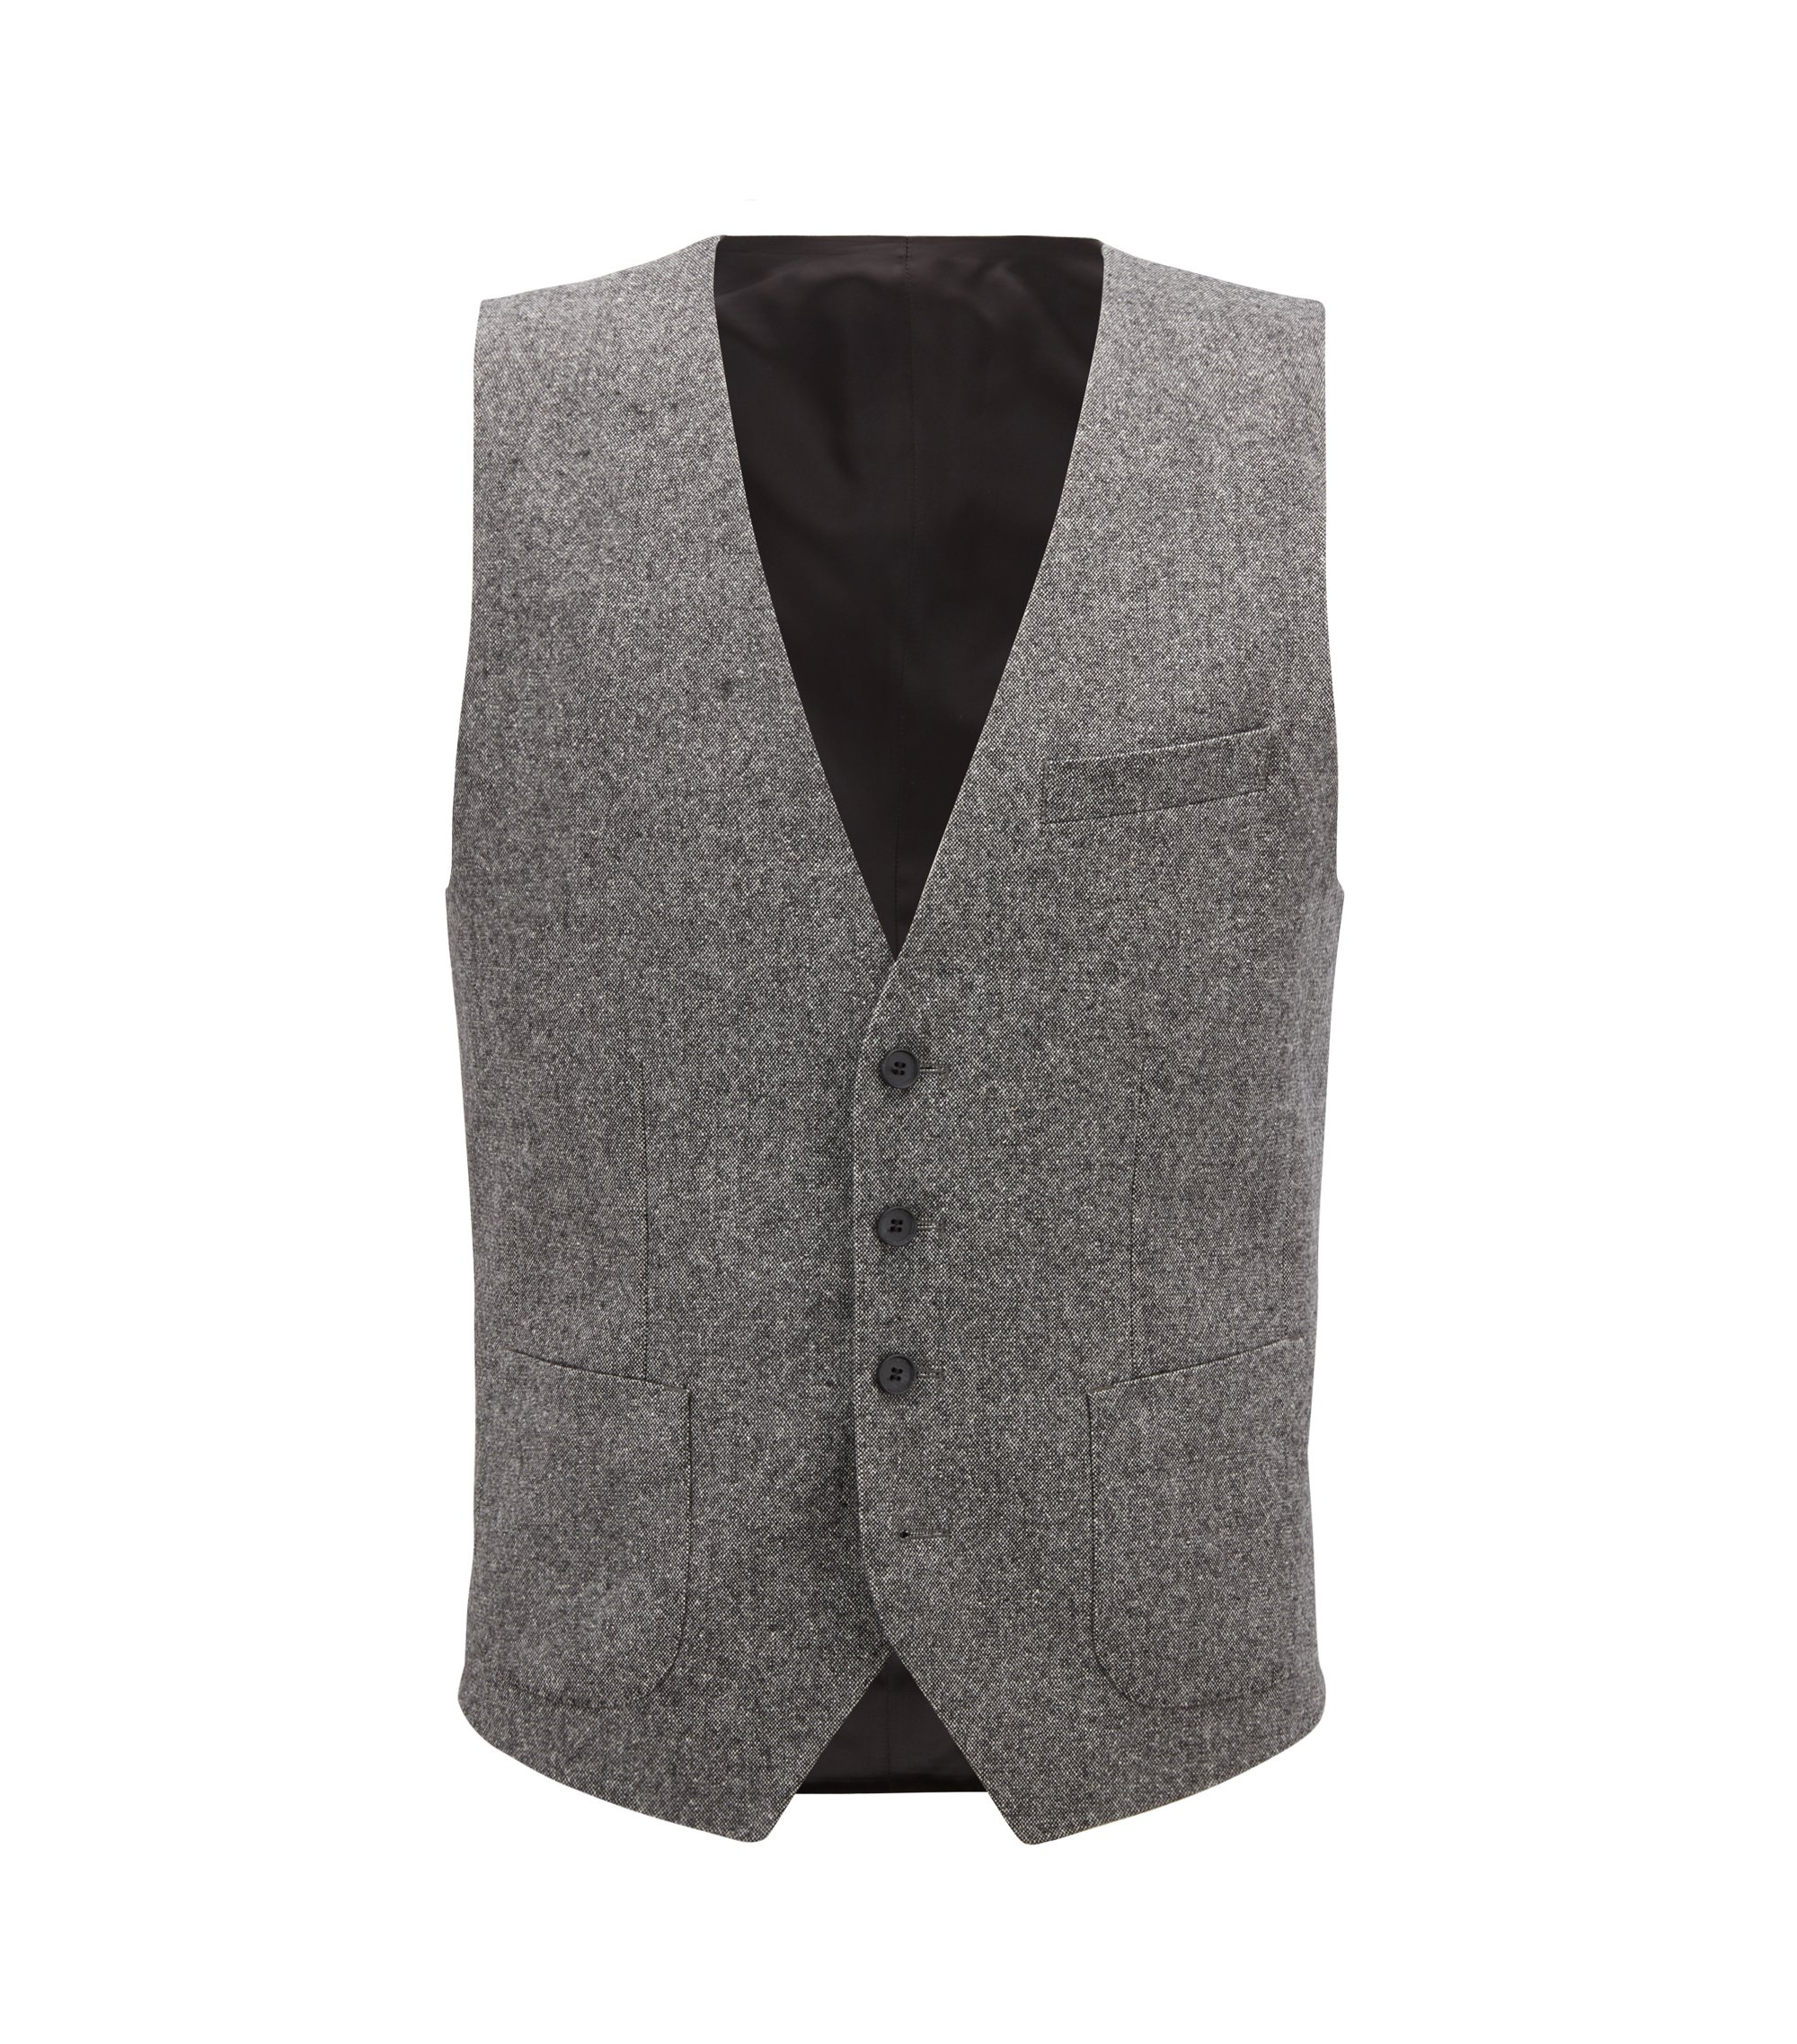 Chaleco slim fit de tweed en mezcla de lana virgen, Gris